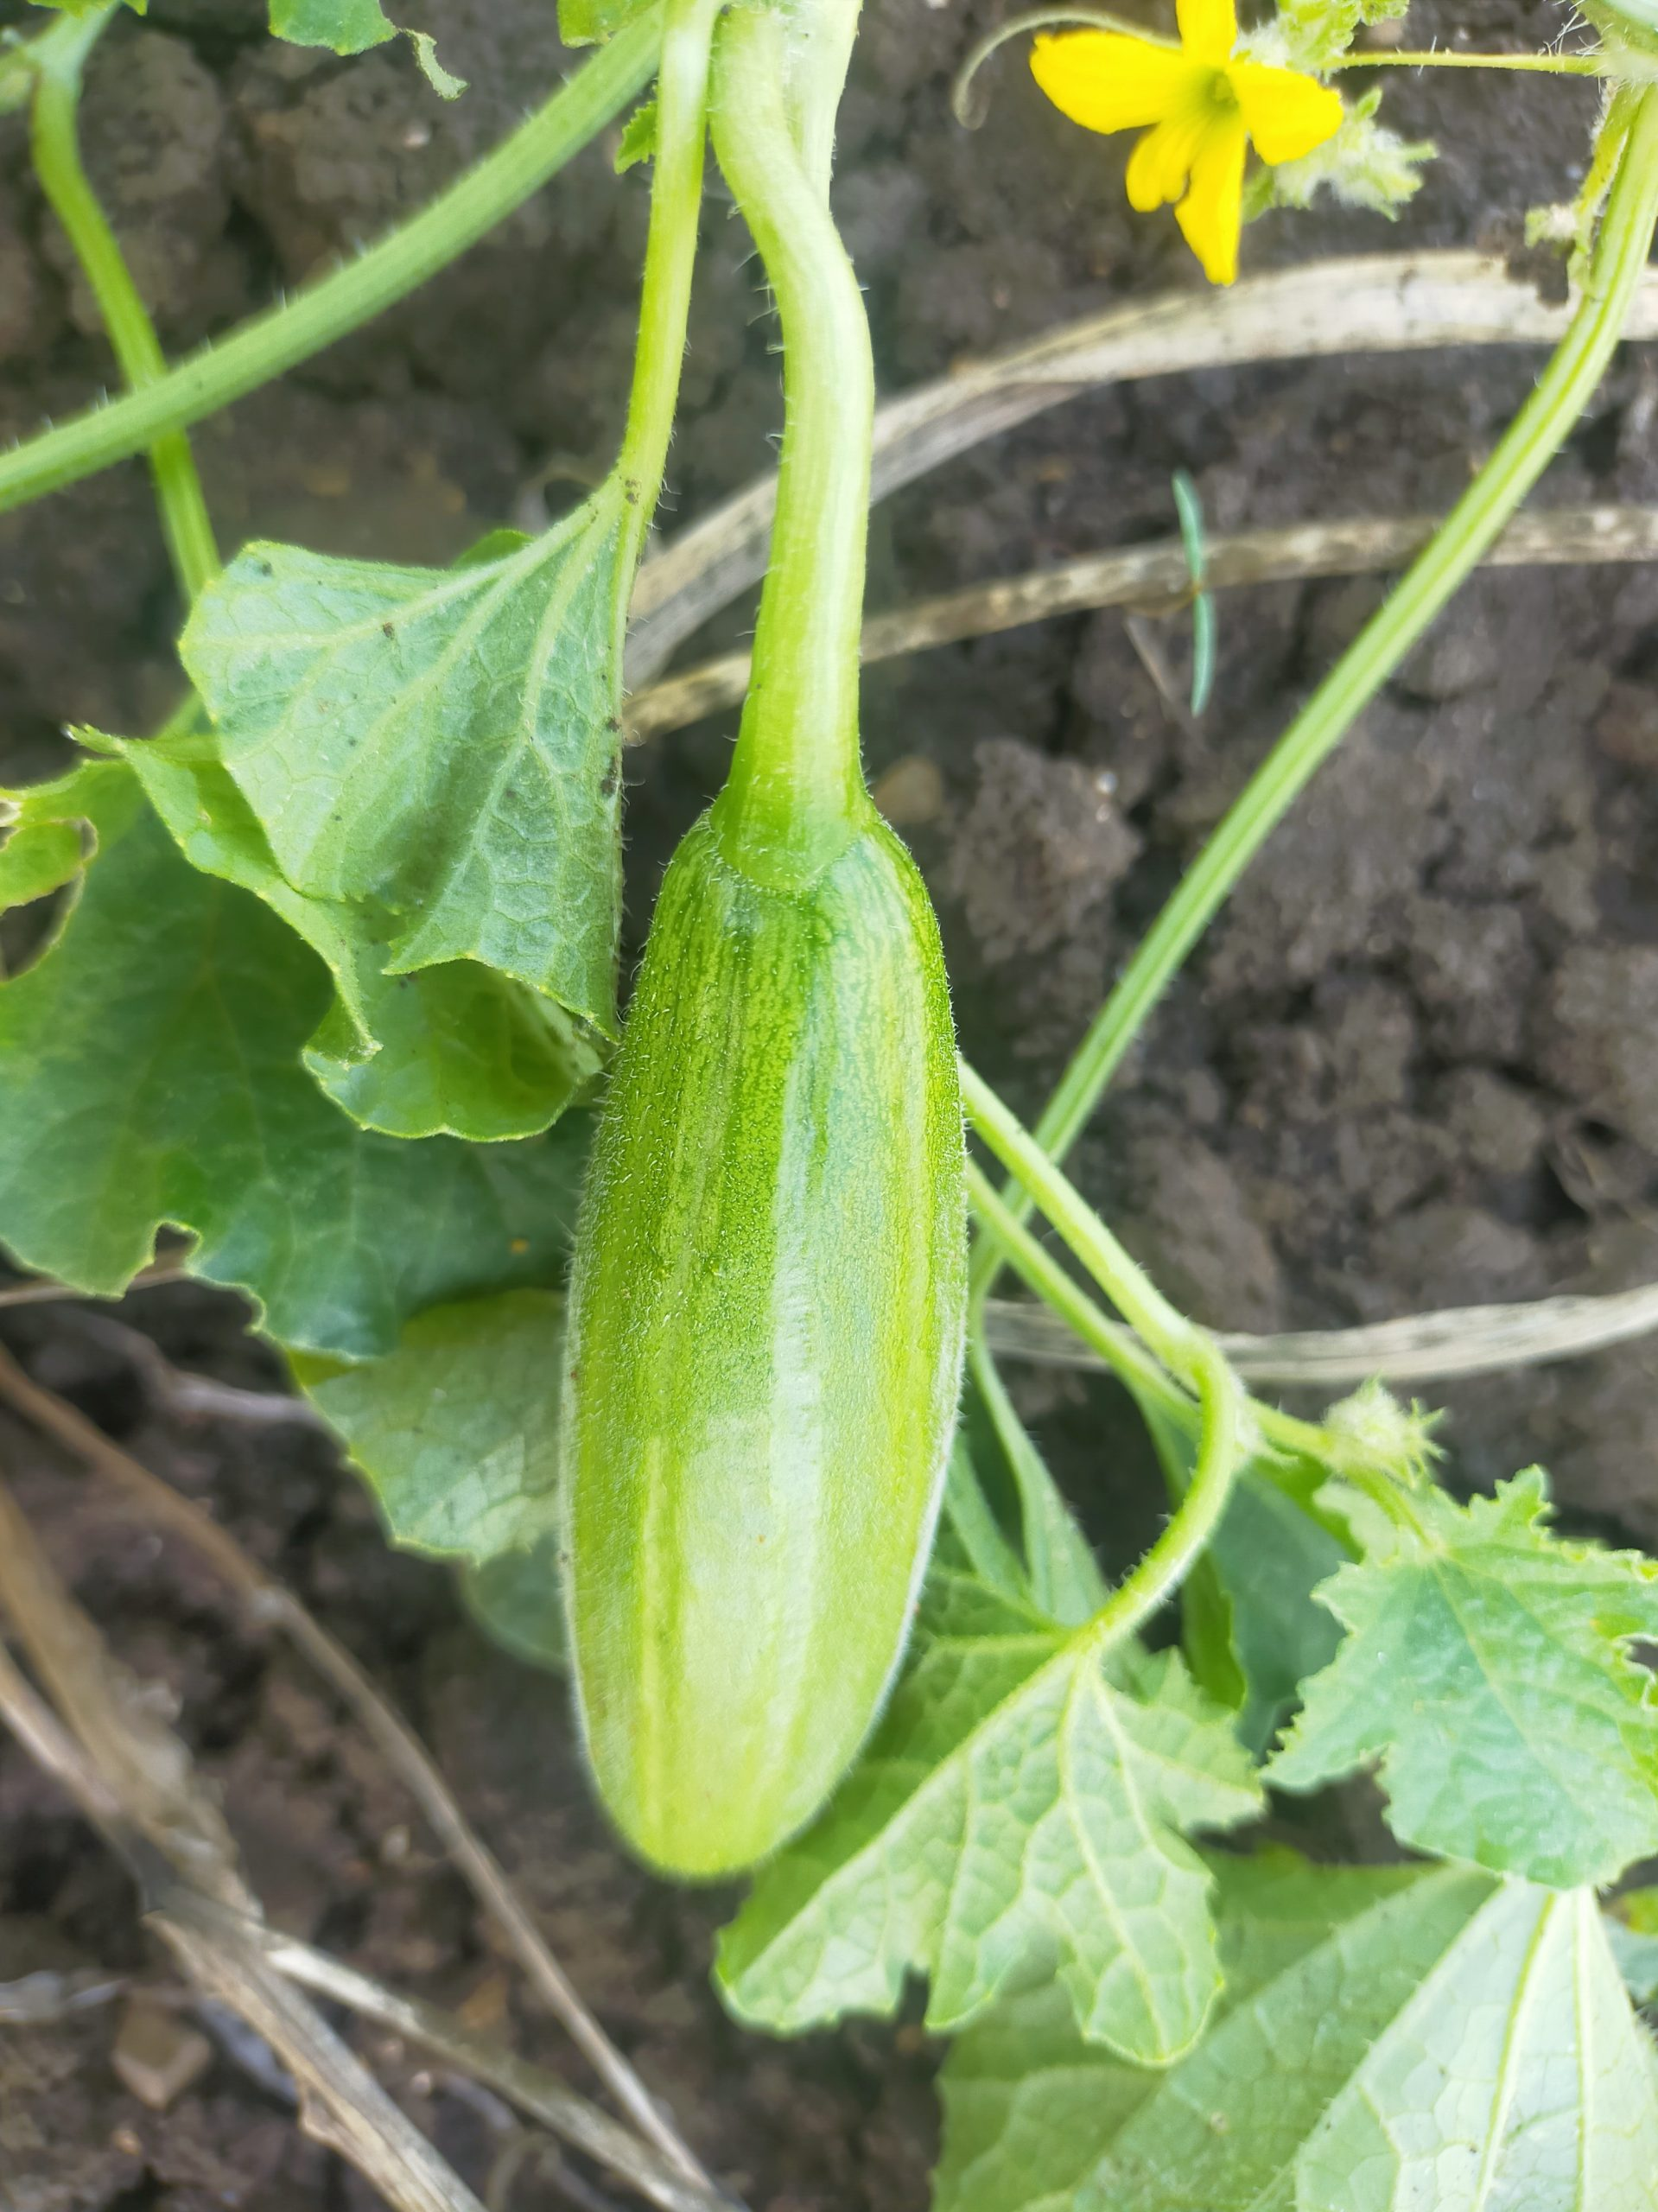 Cucumber with plant